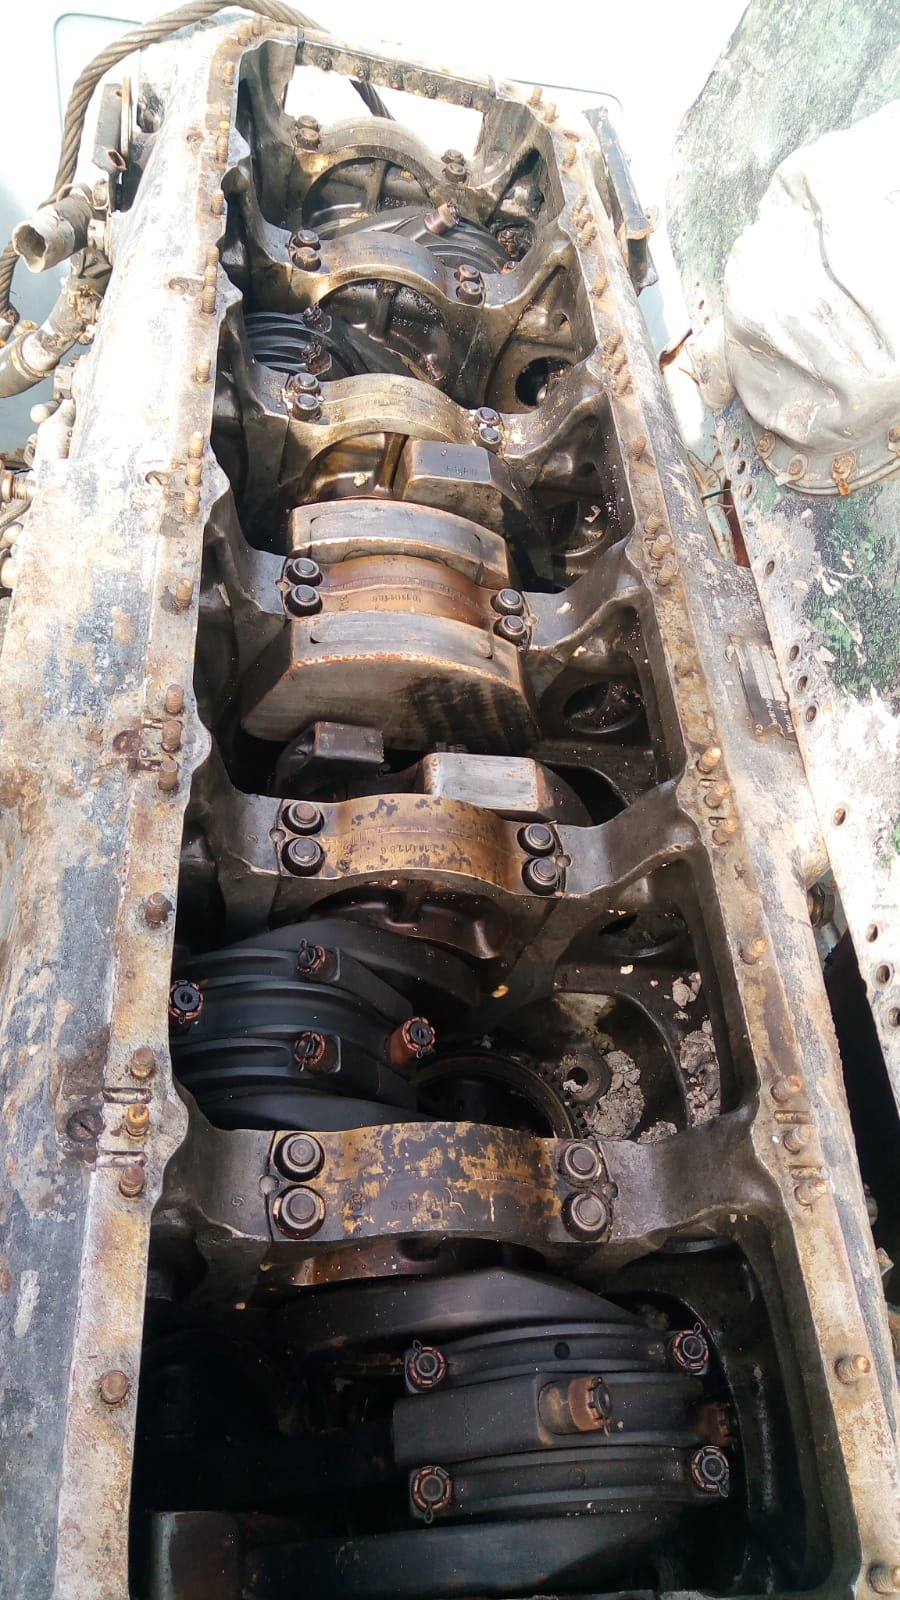 Aircraft engine DB 605 & JUMO-211-J 1943 WWII For Sale (picture 2 of 3)